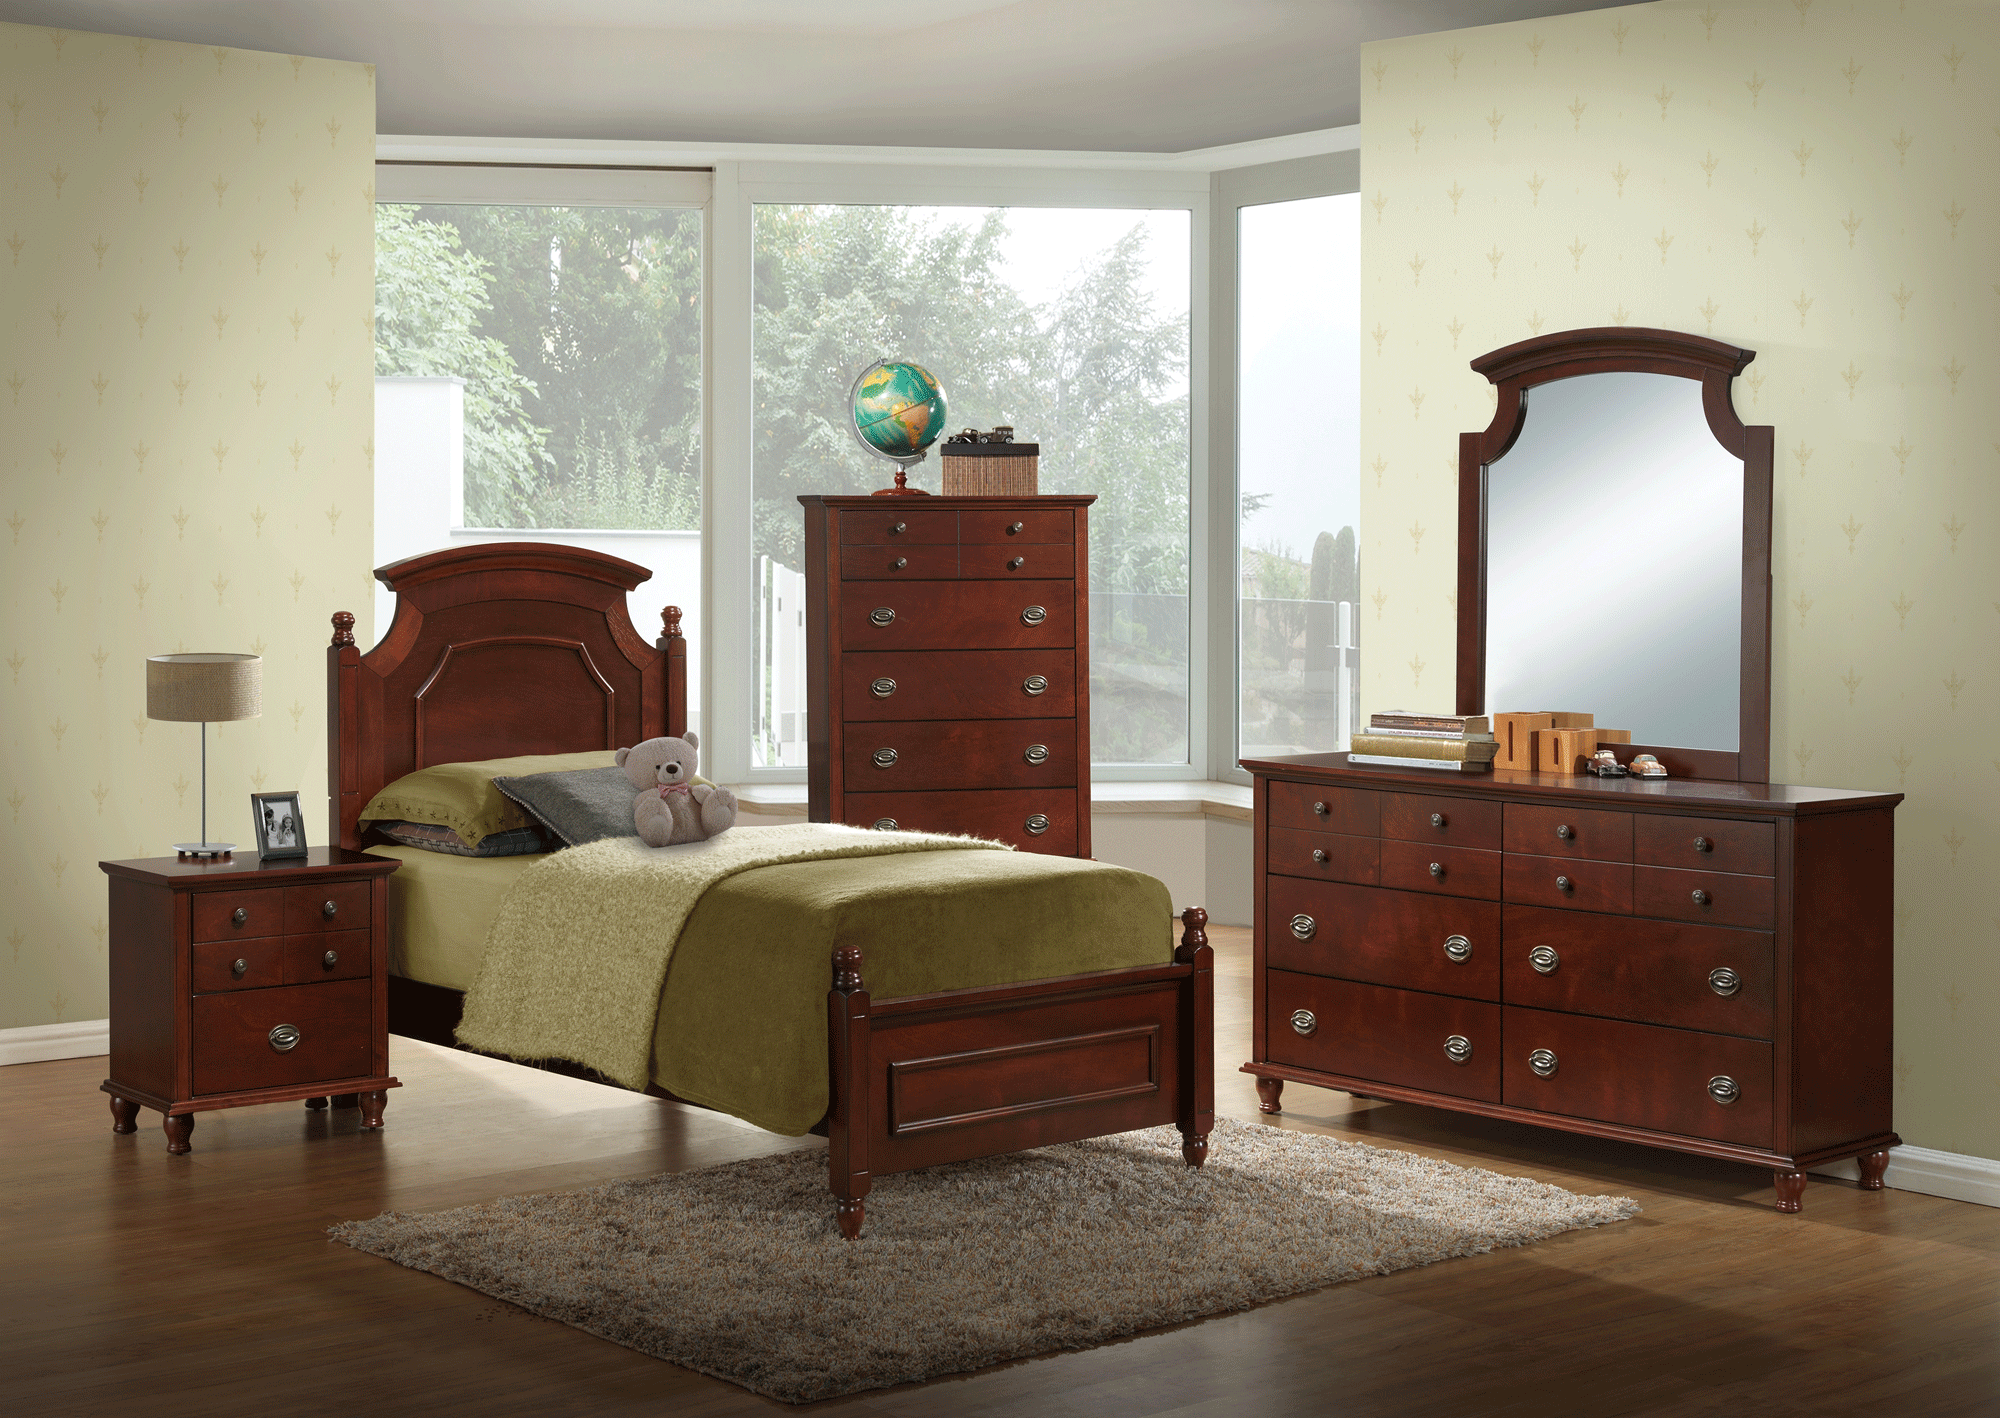 Leila Kids Cherry Bedroom Set By Global Furniture